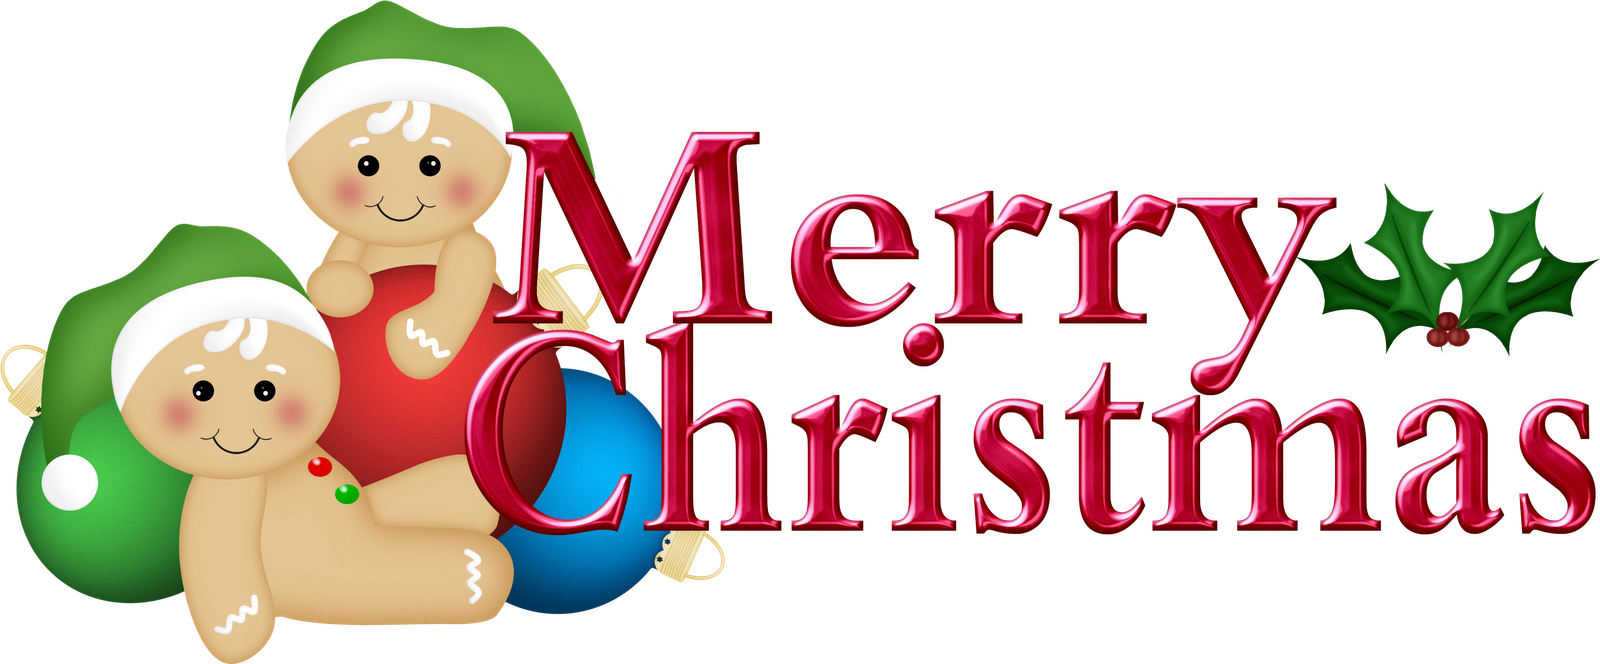 Christmas clipart happy birthday. Funny photo ideas jesus